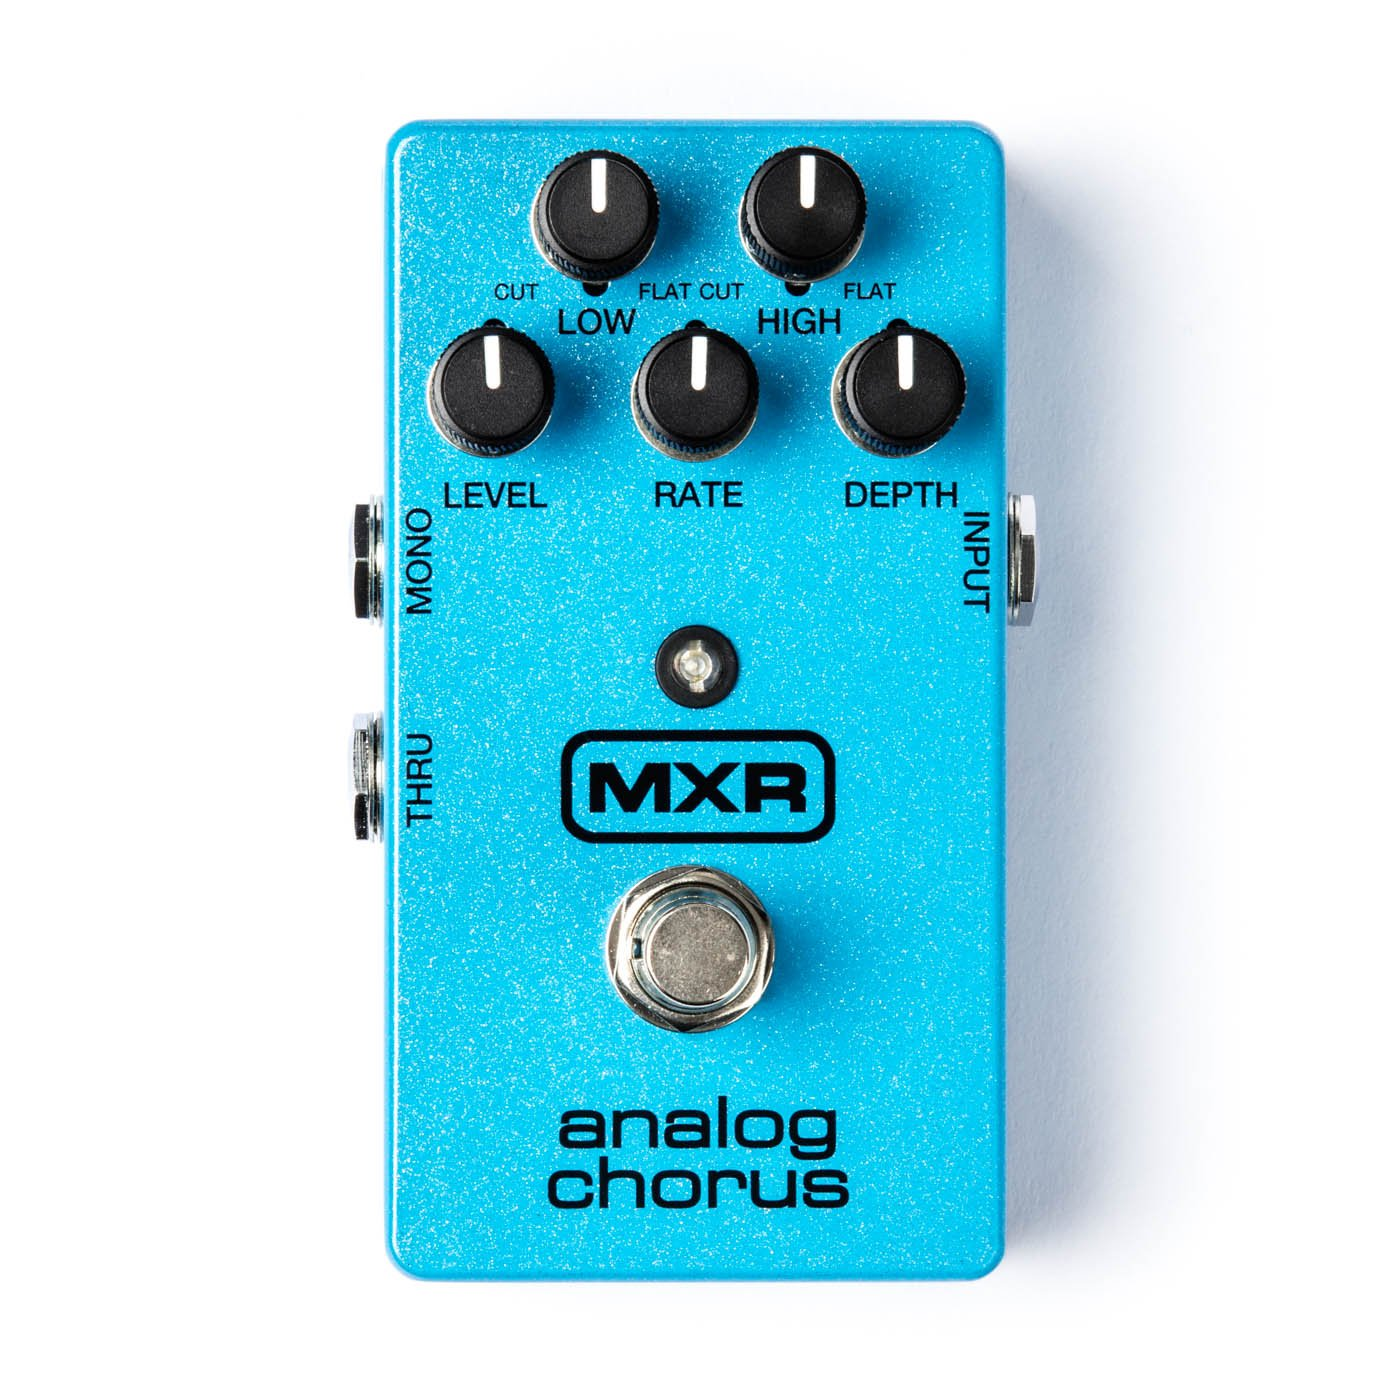 MXR Analog Chorus Effects Pedal